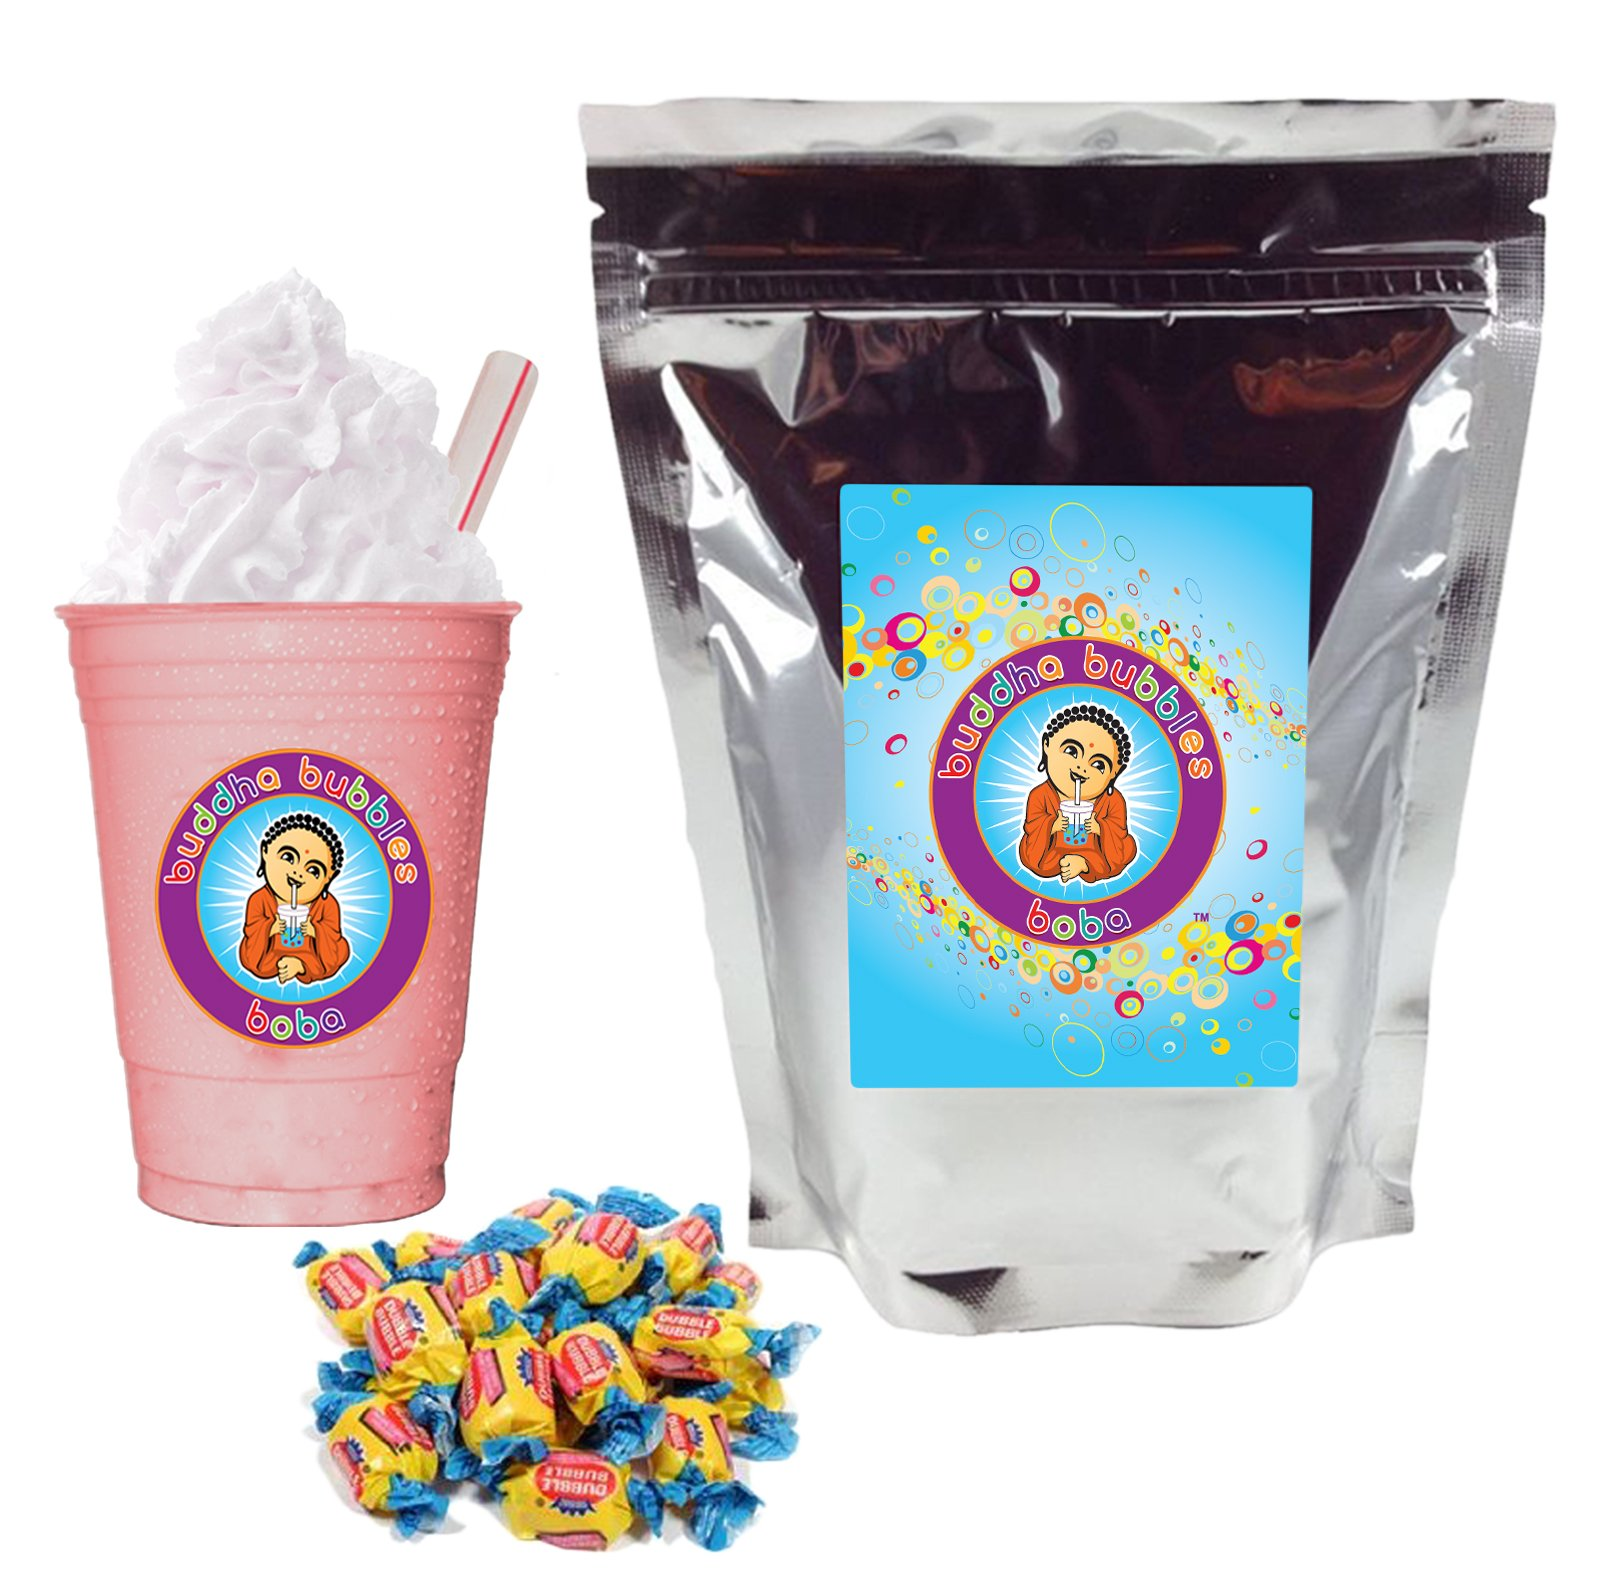 Bubble Gum Boba Bubble Tea Drink Mix Powder By Buddha Bubbles Boba 1 Kilo (2.2 Pounds) | (1000 Grams) by Buddha Bubbles Boba